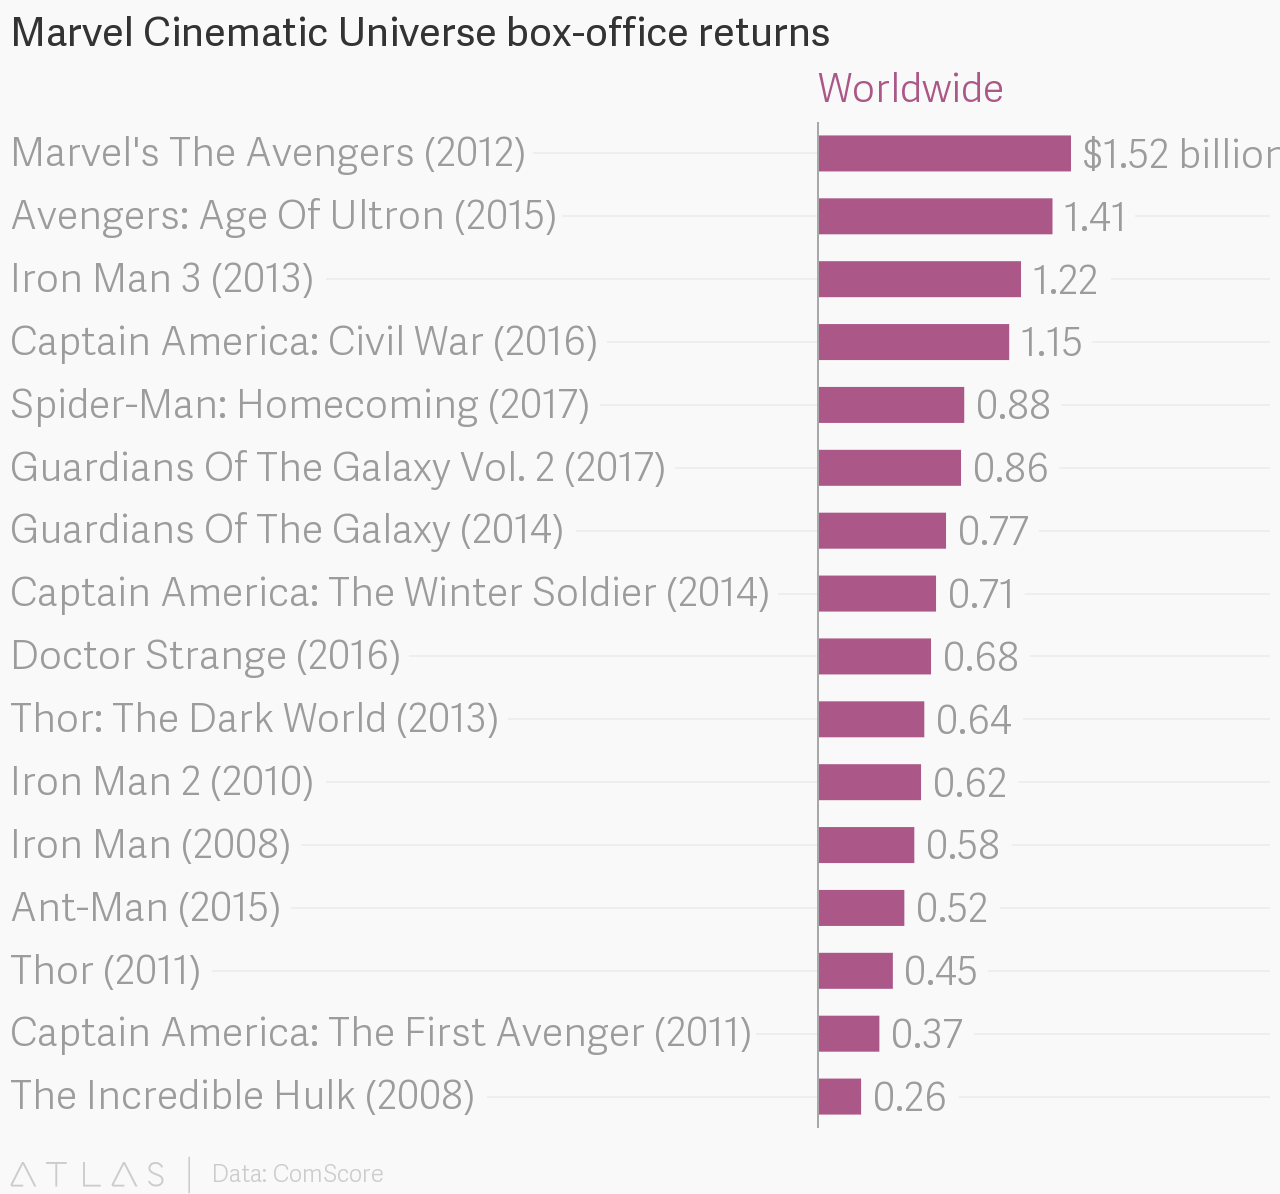 Free Download Film Box Office: Marvel Cinematic Universe Box-office Returns